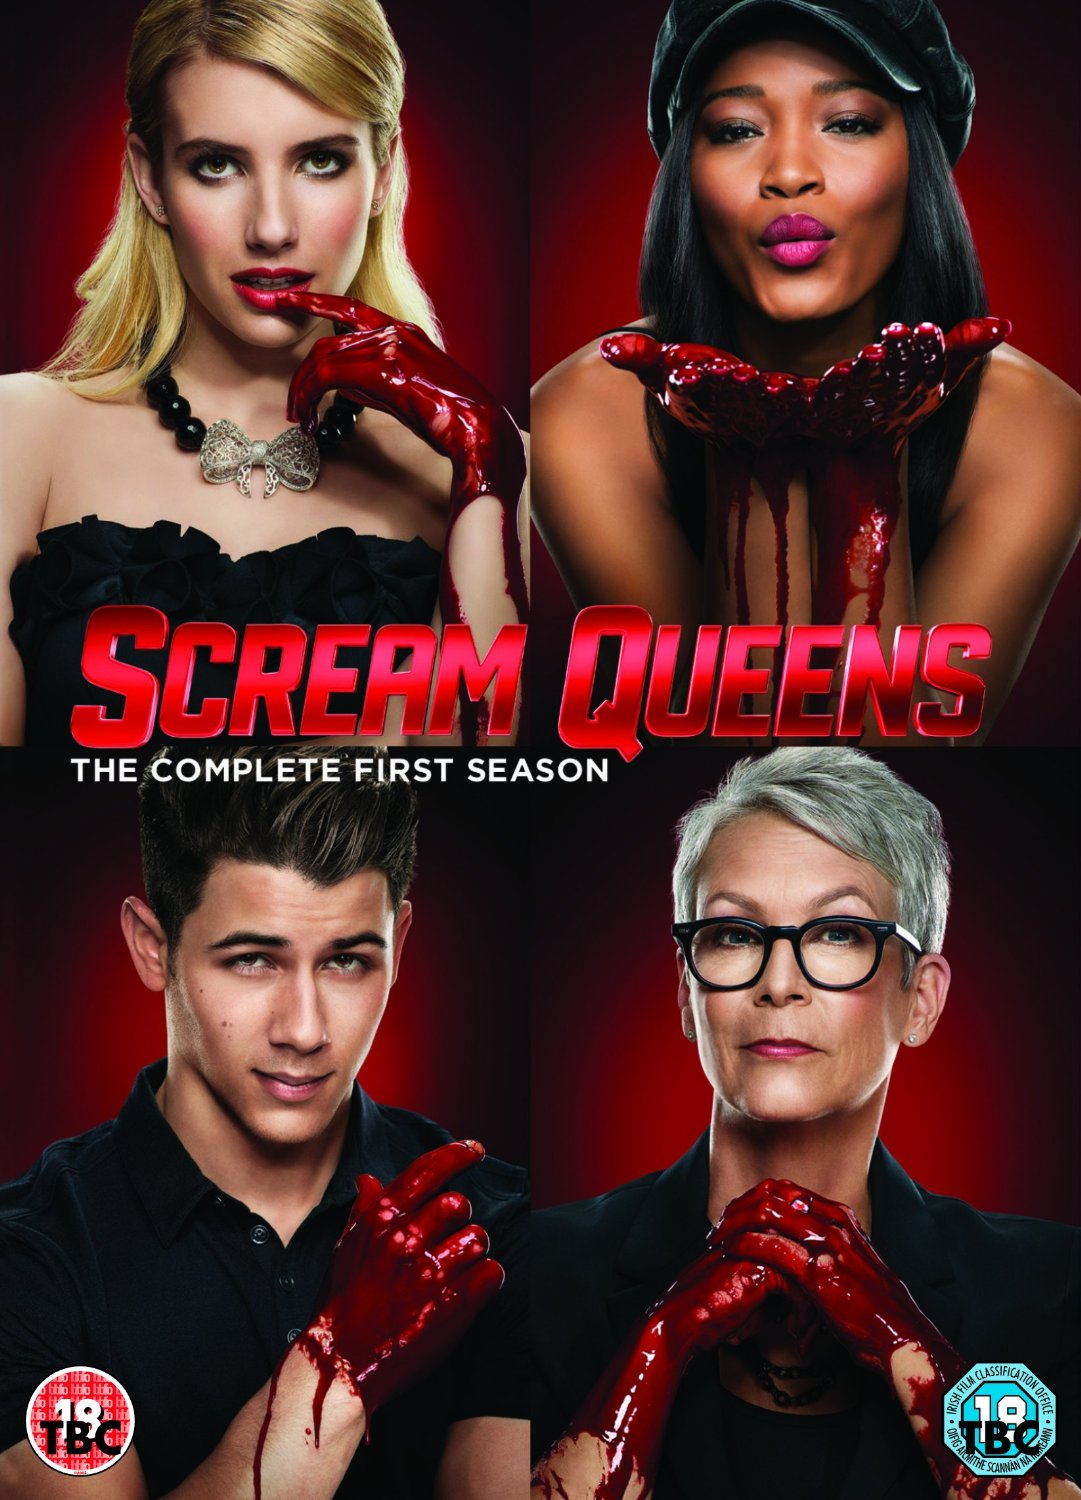 Scream Queens Season 1 DVD review